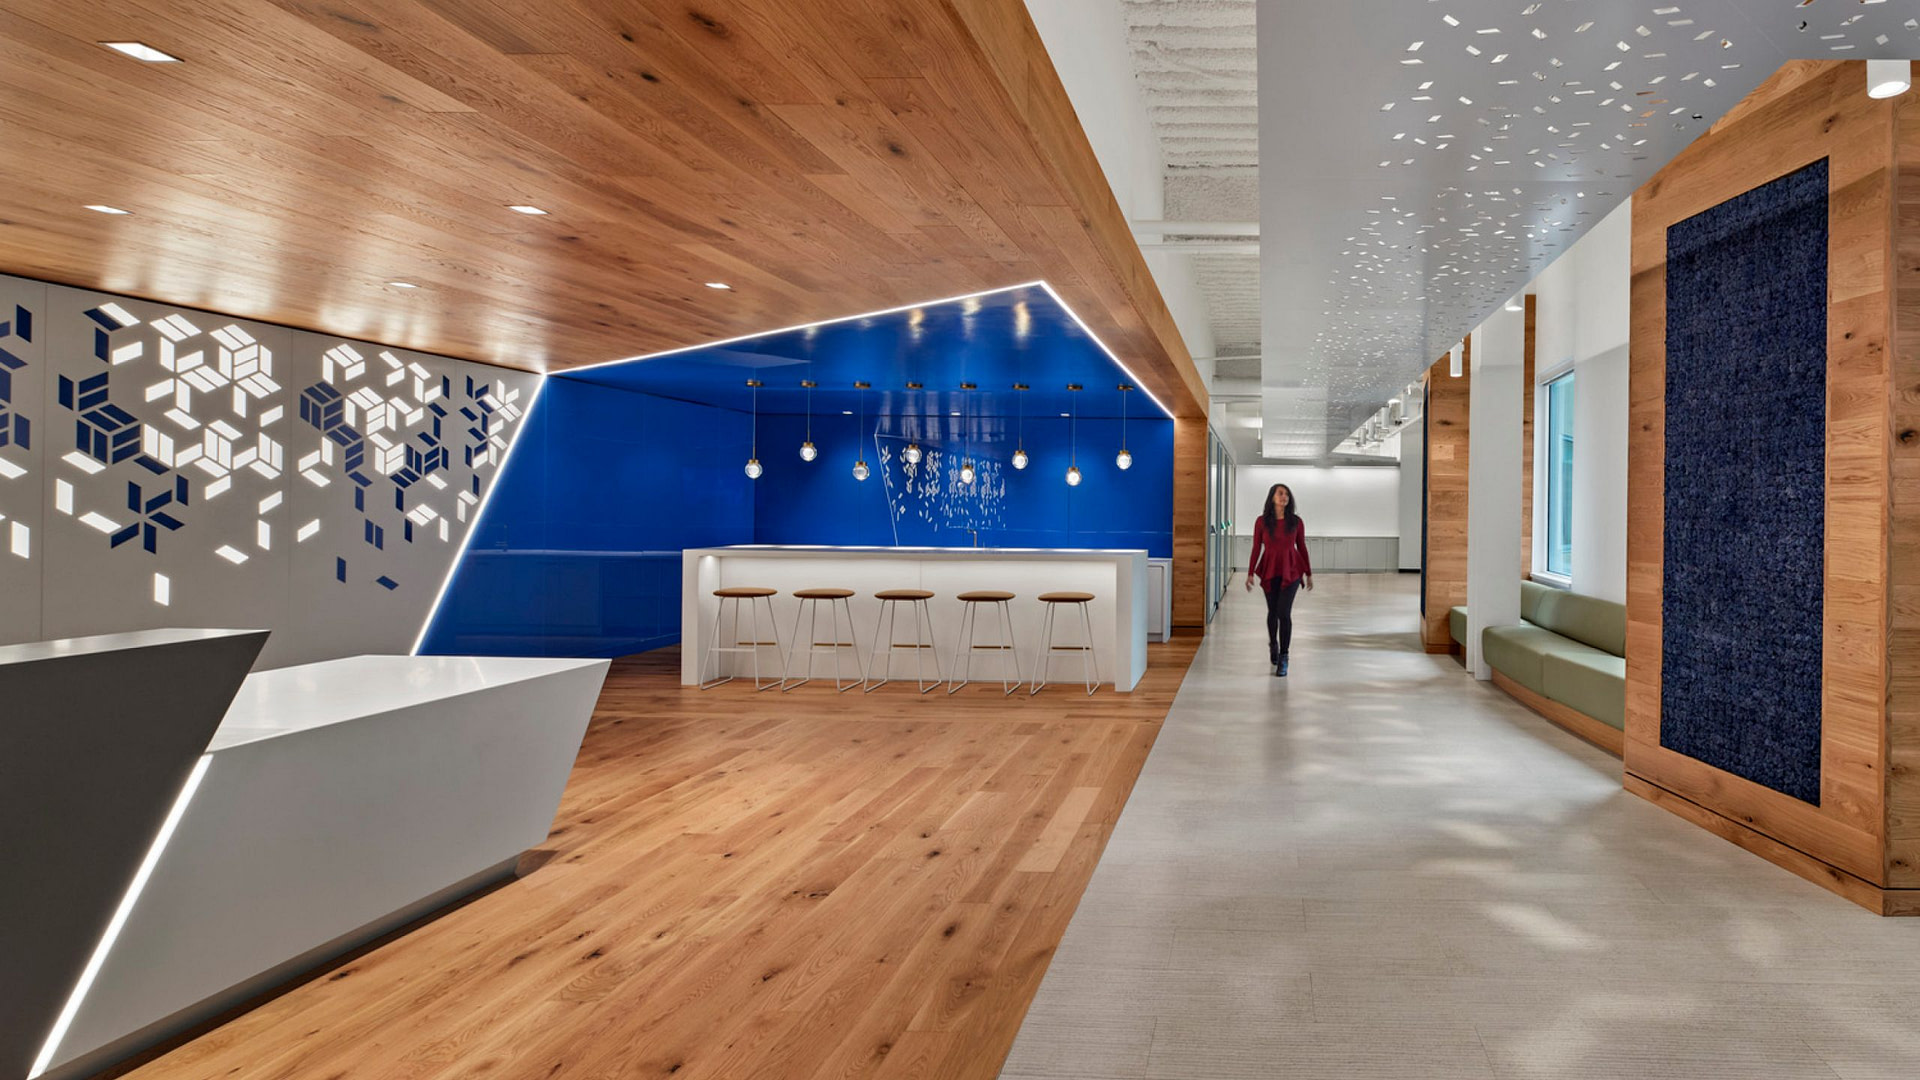 Reception area and tech bar at a Boston workplace.